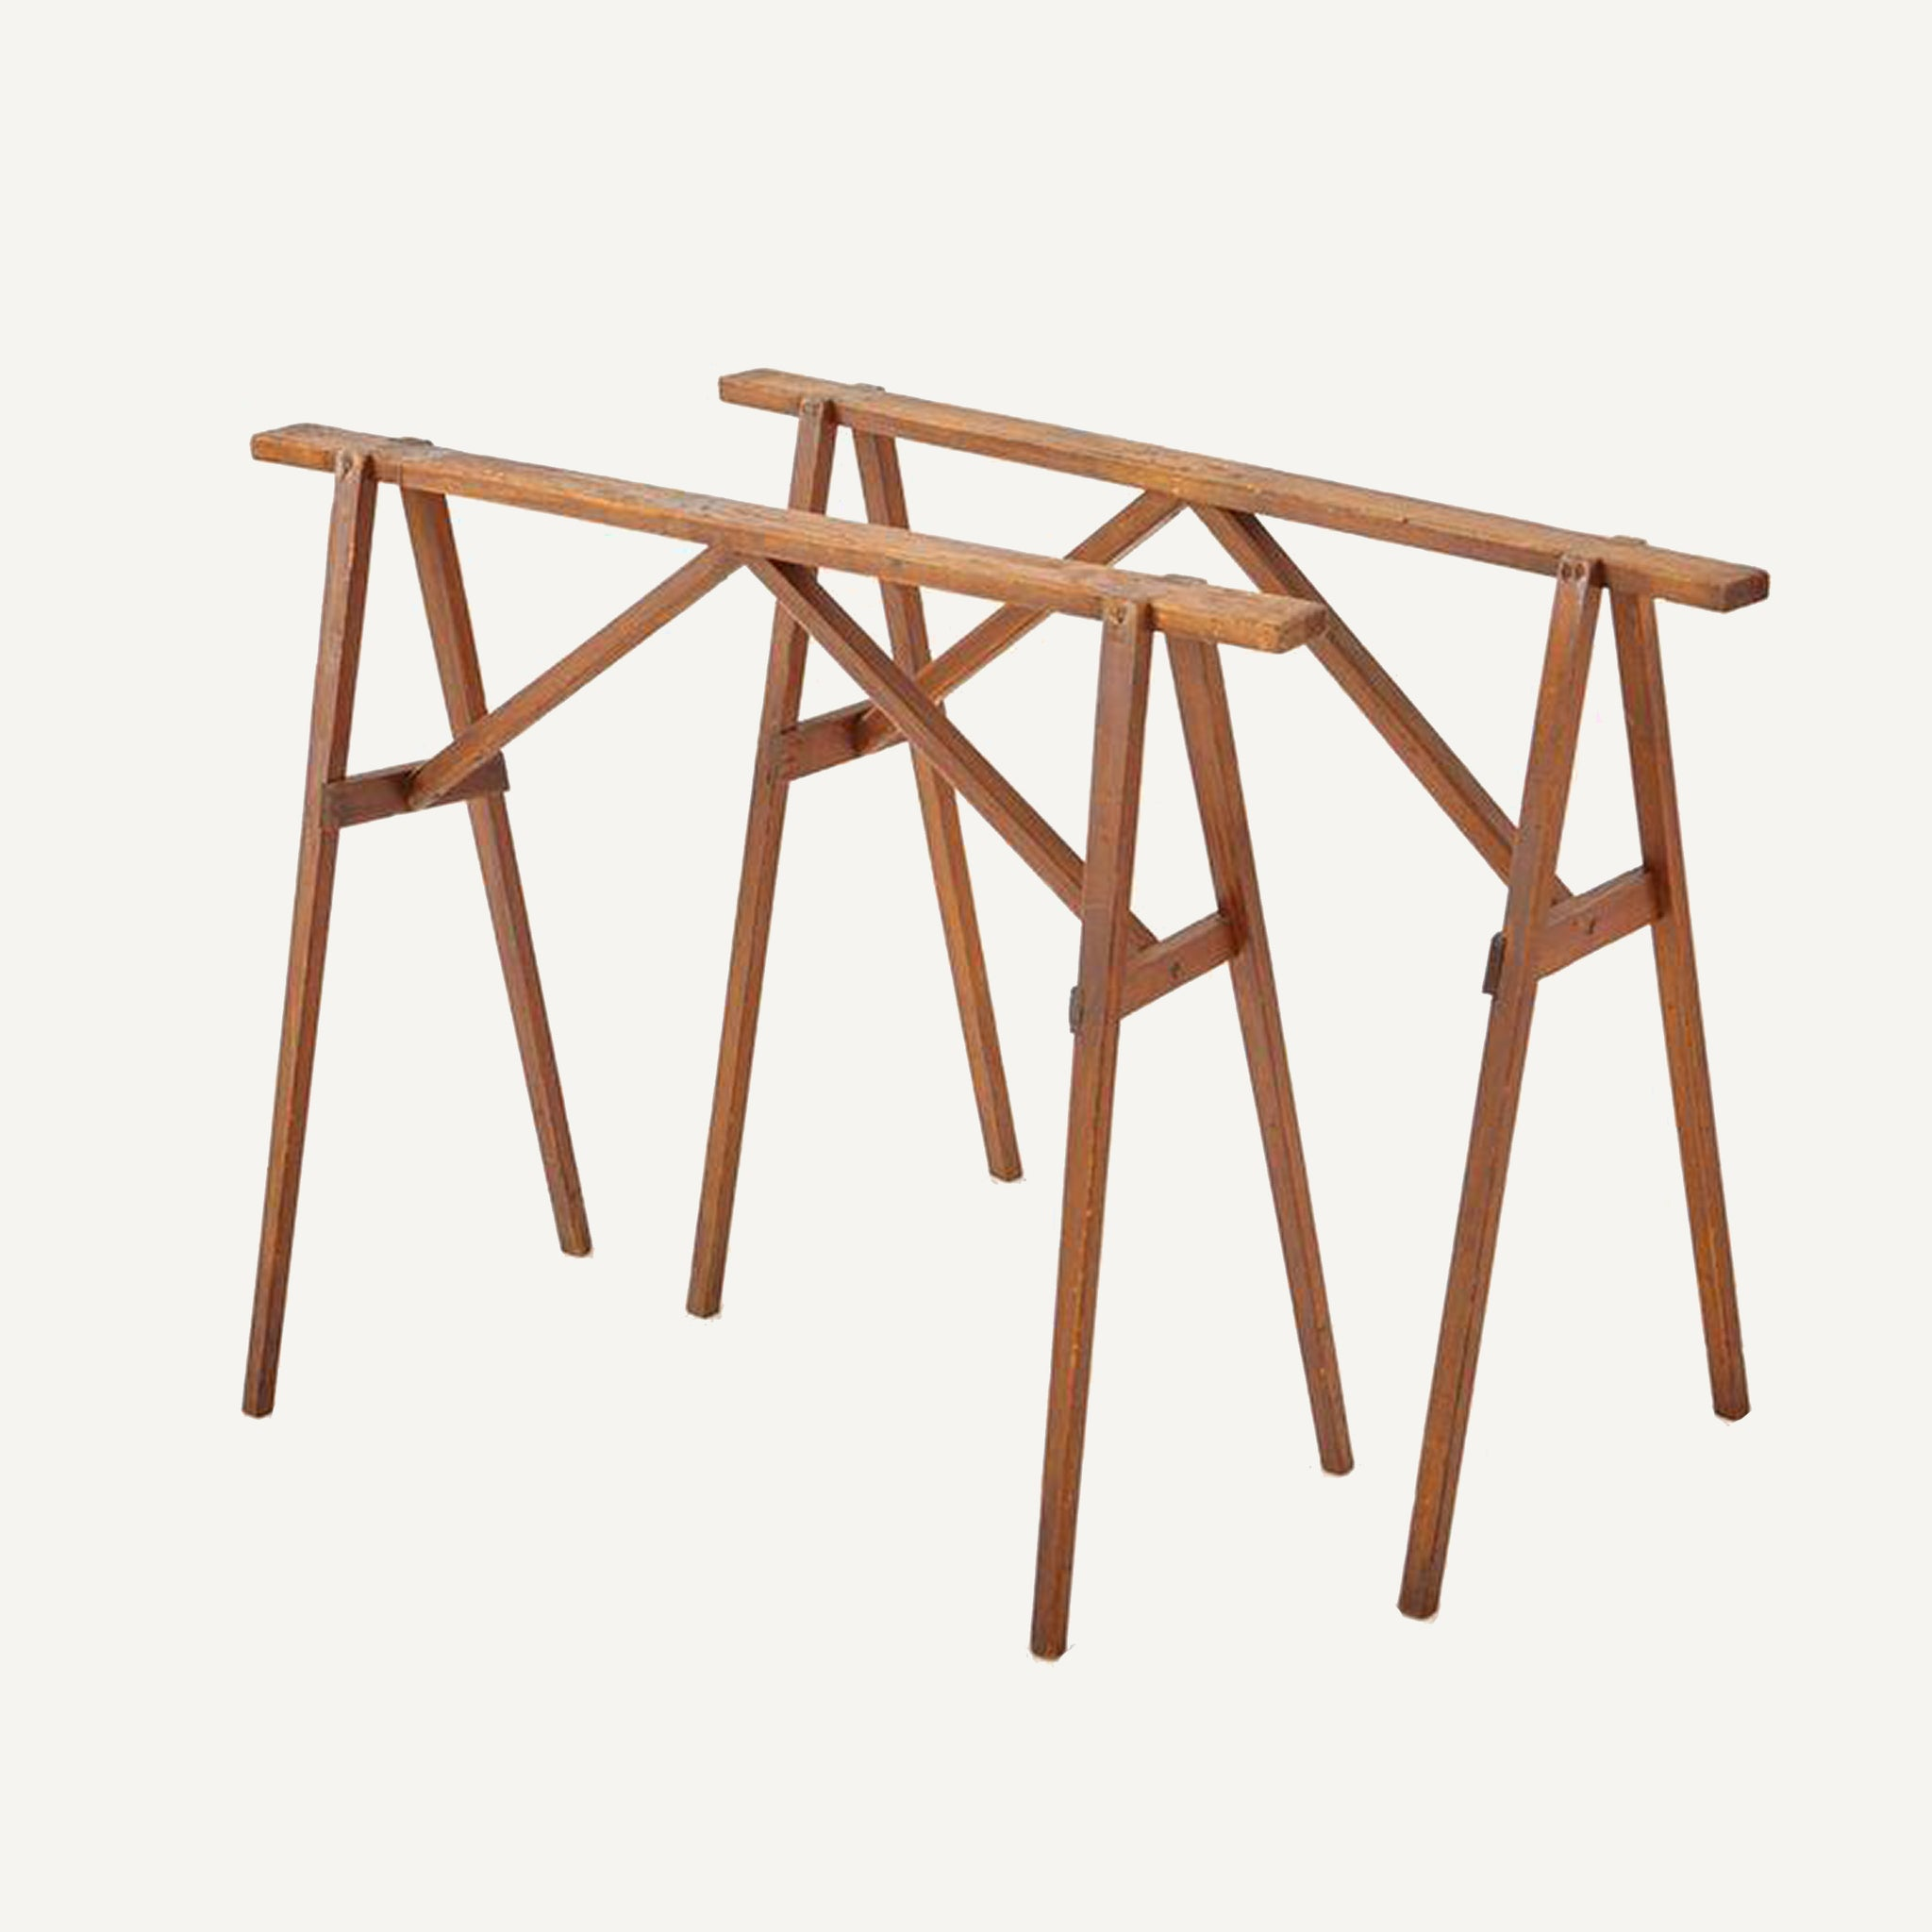 ANTIQUE SAWHORSE TABLE